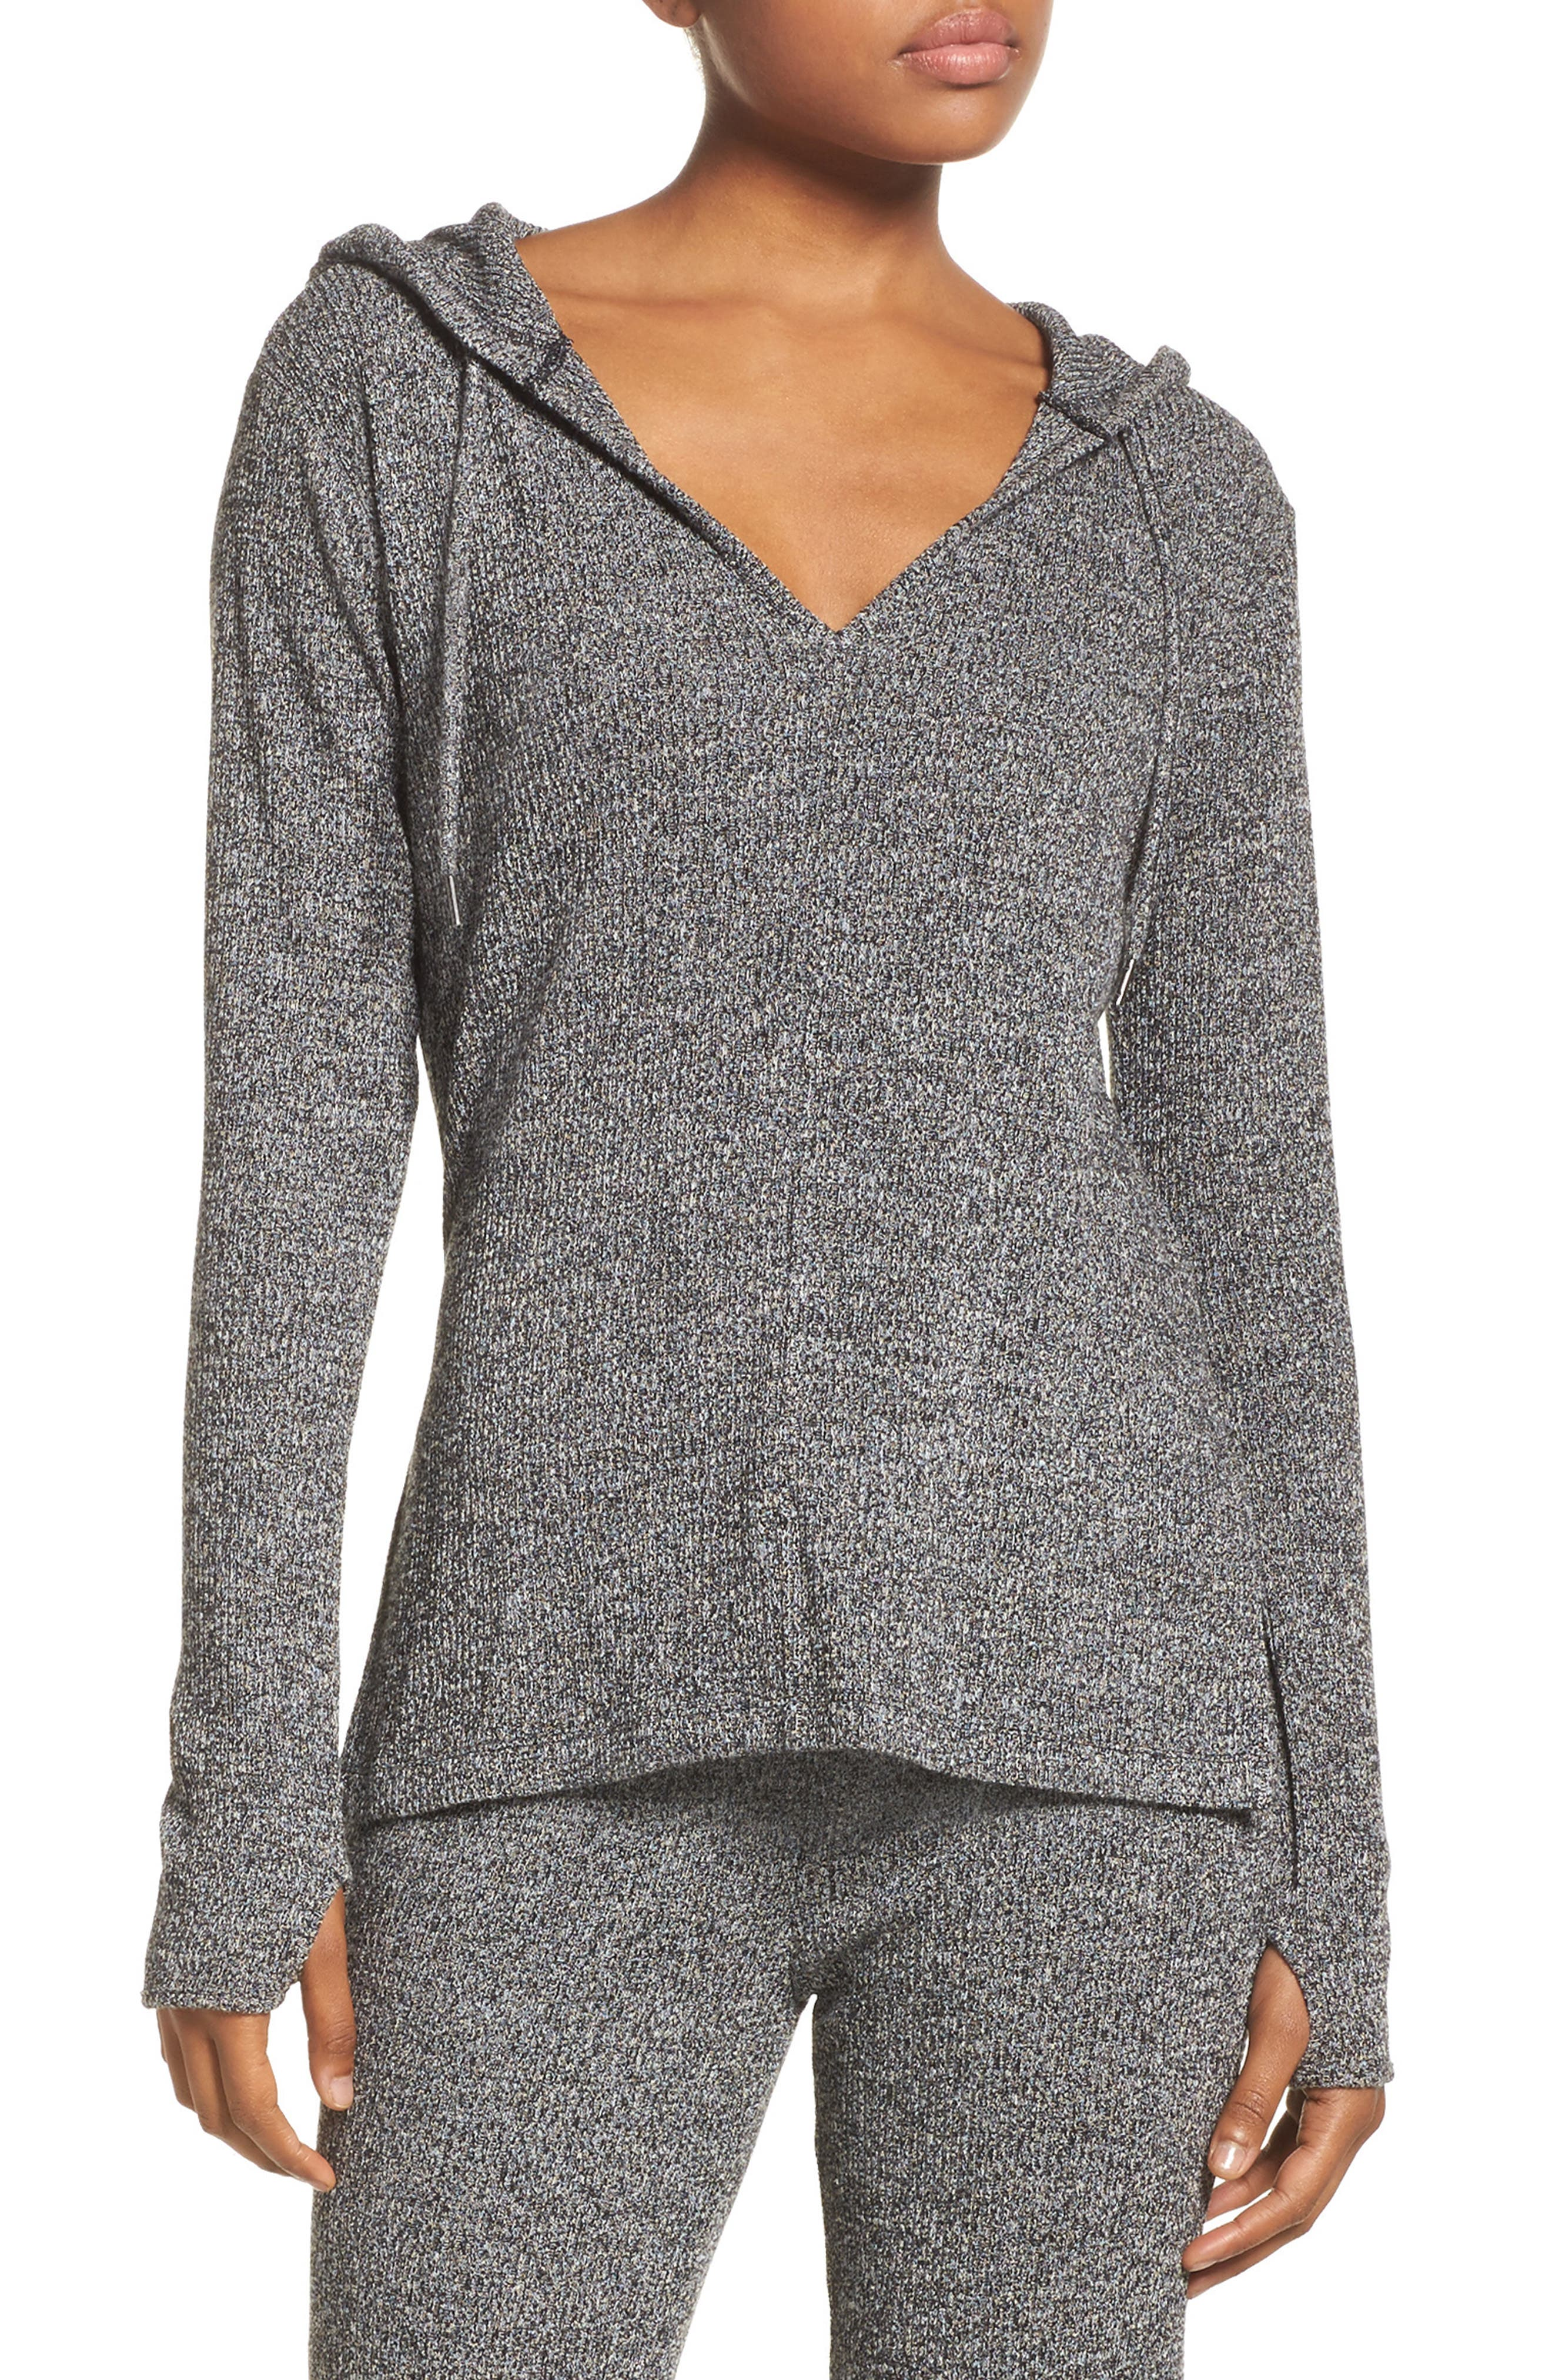 Mantra Hooded Pullover Top,                         Main,                         color, 001